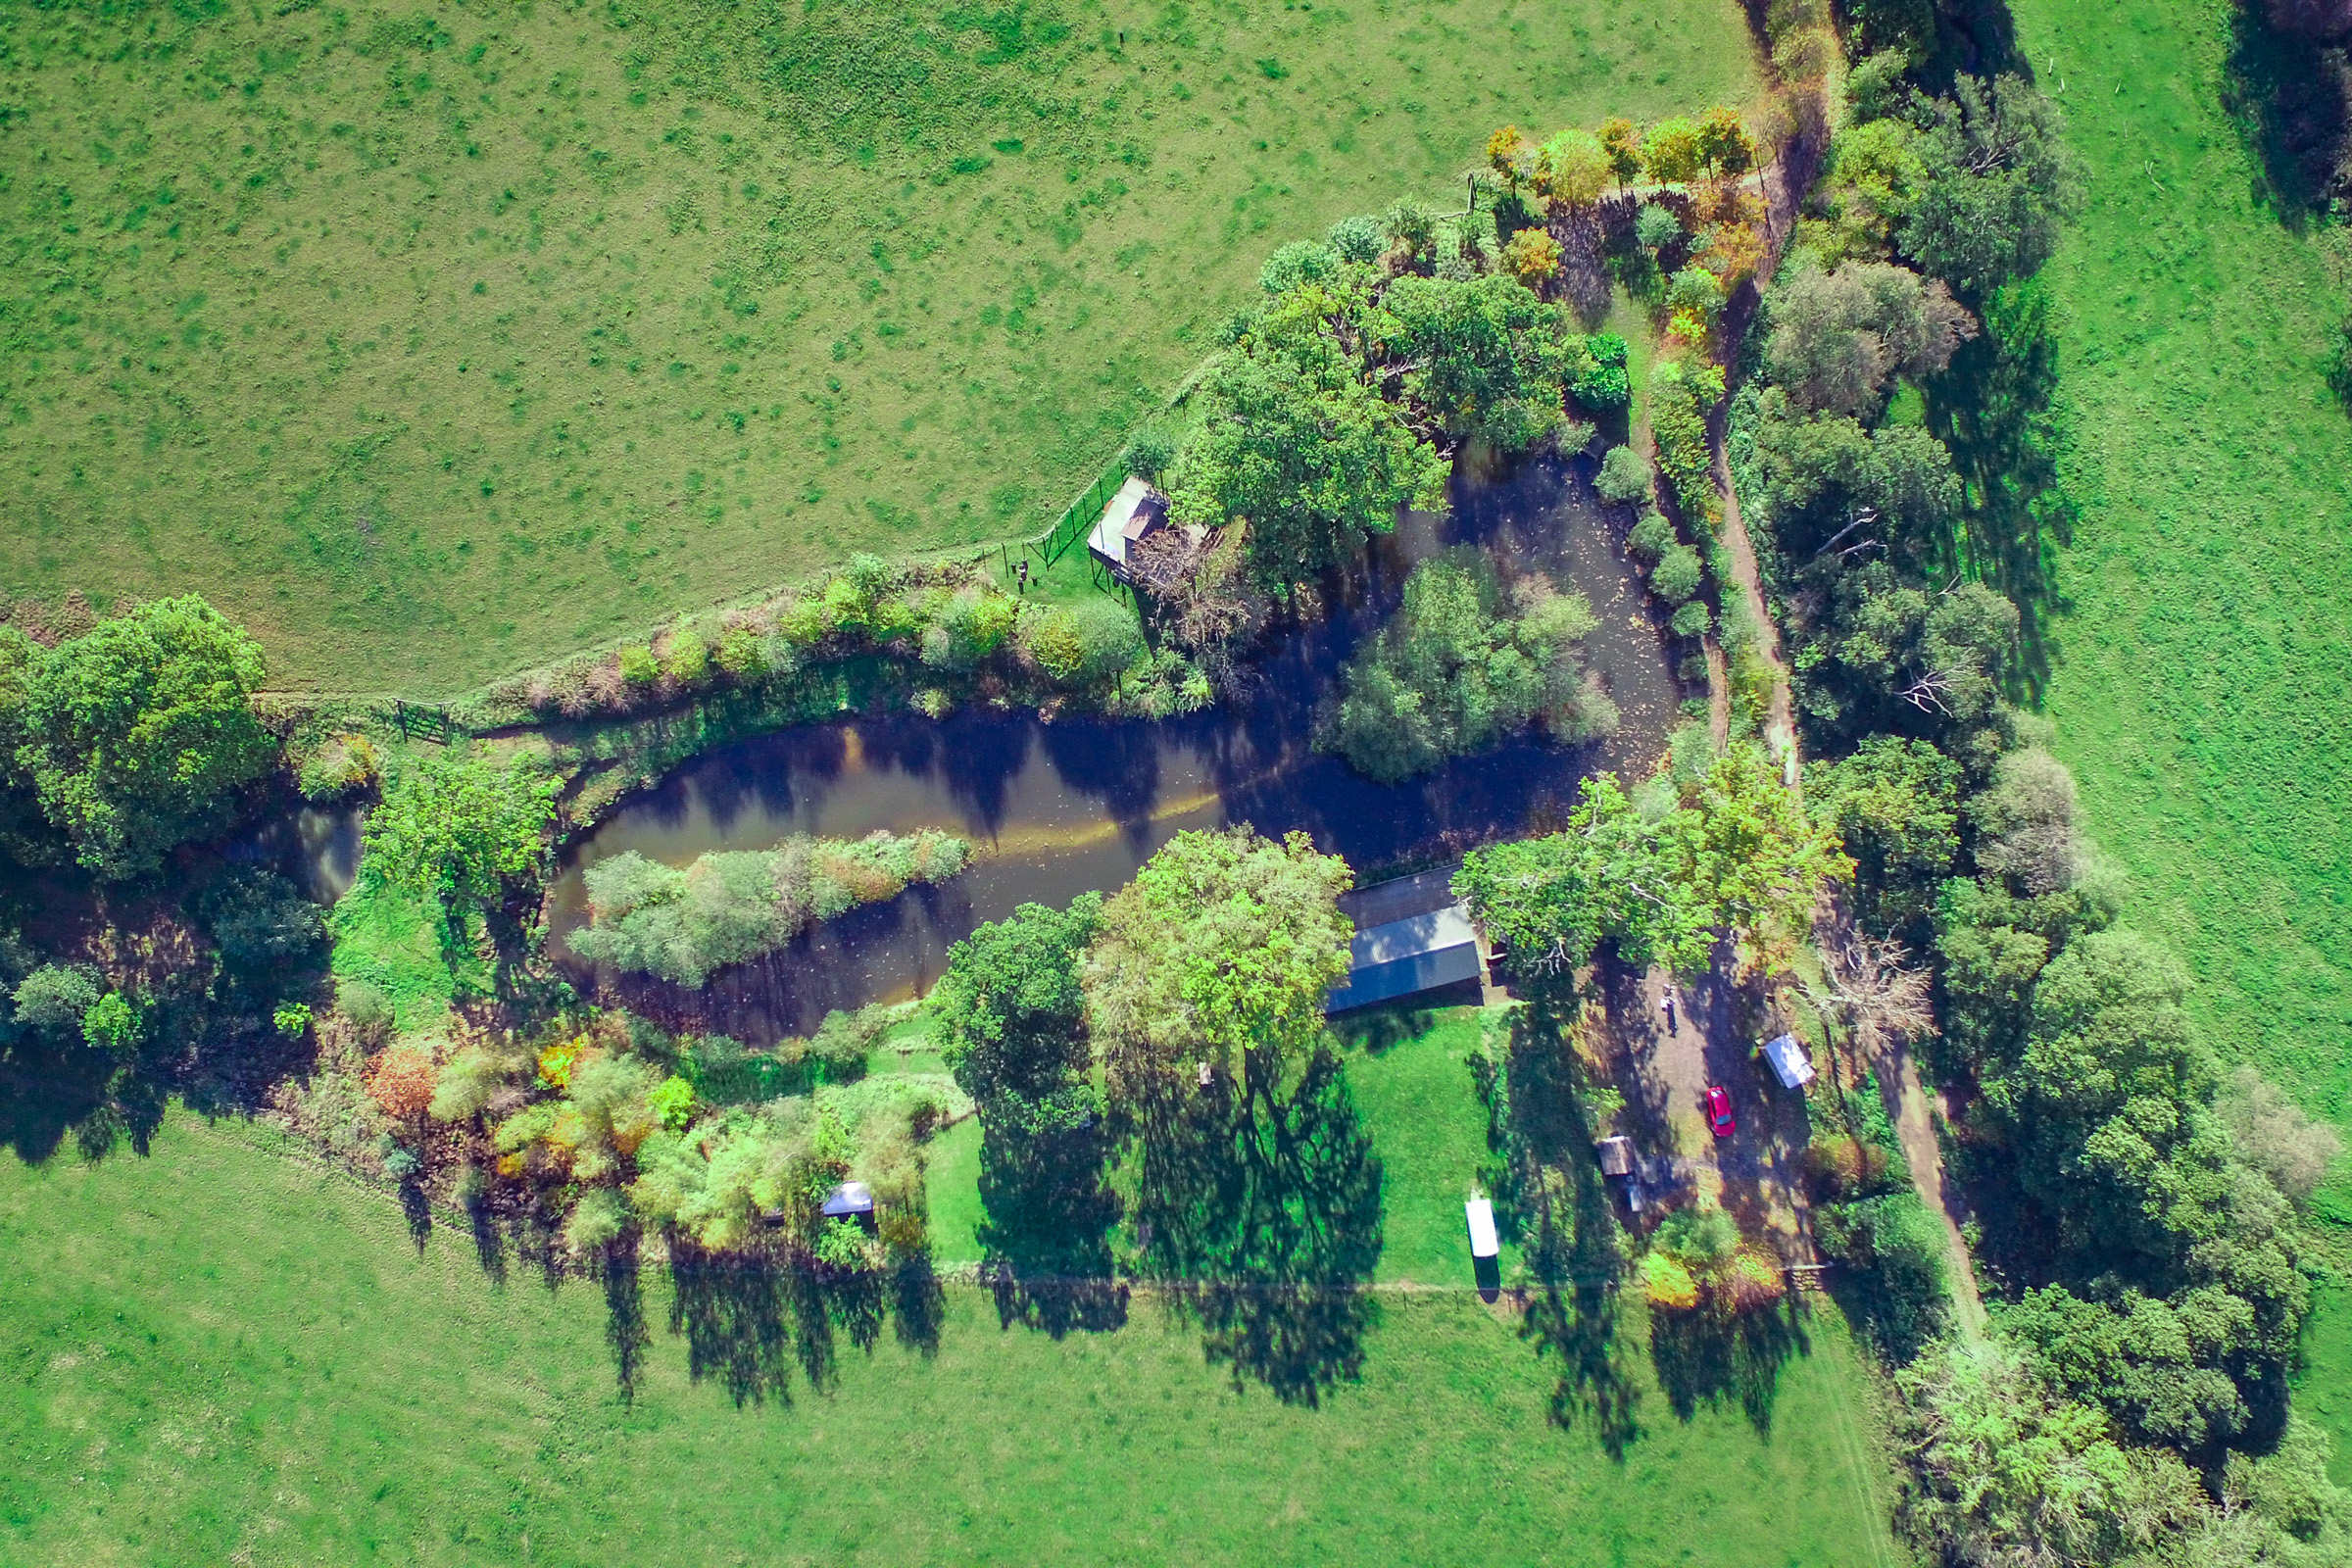 Painswick Glamping – Campsite from above